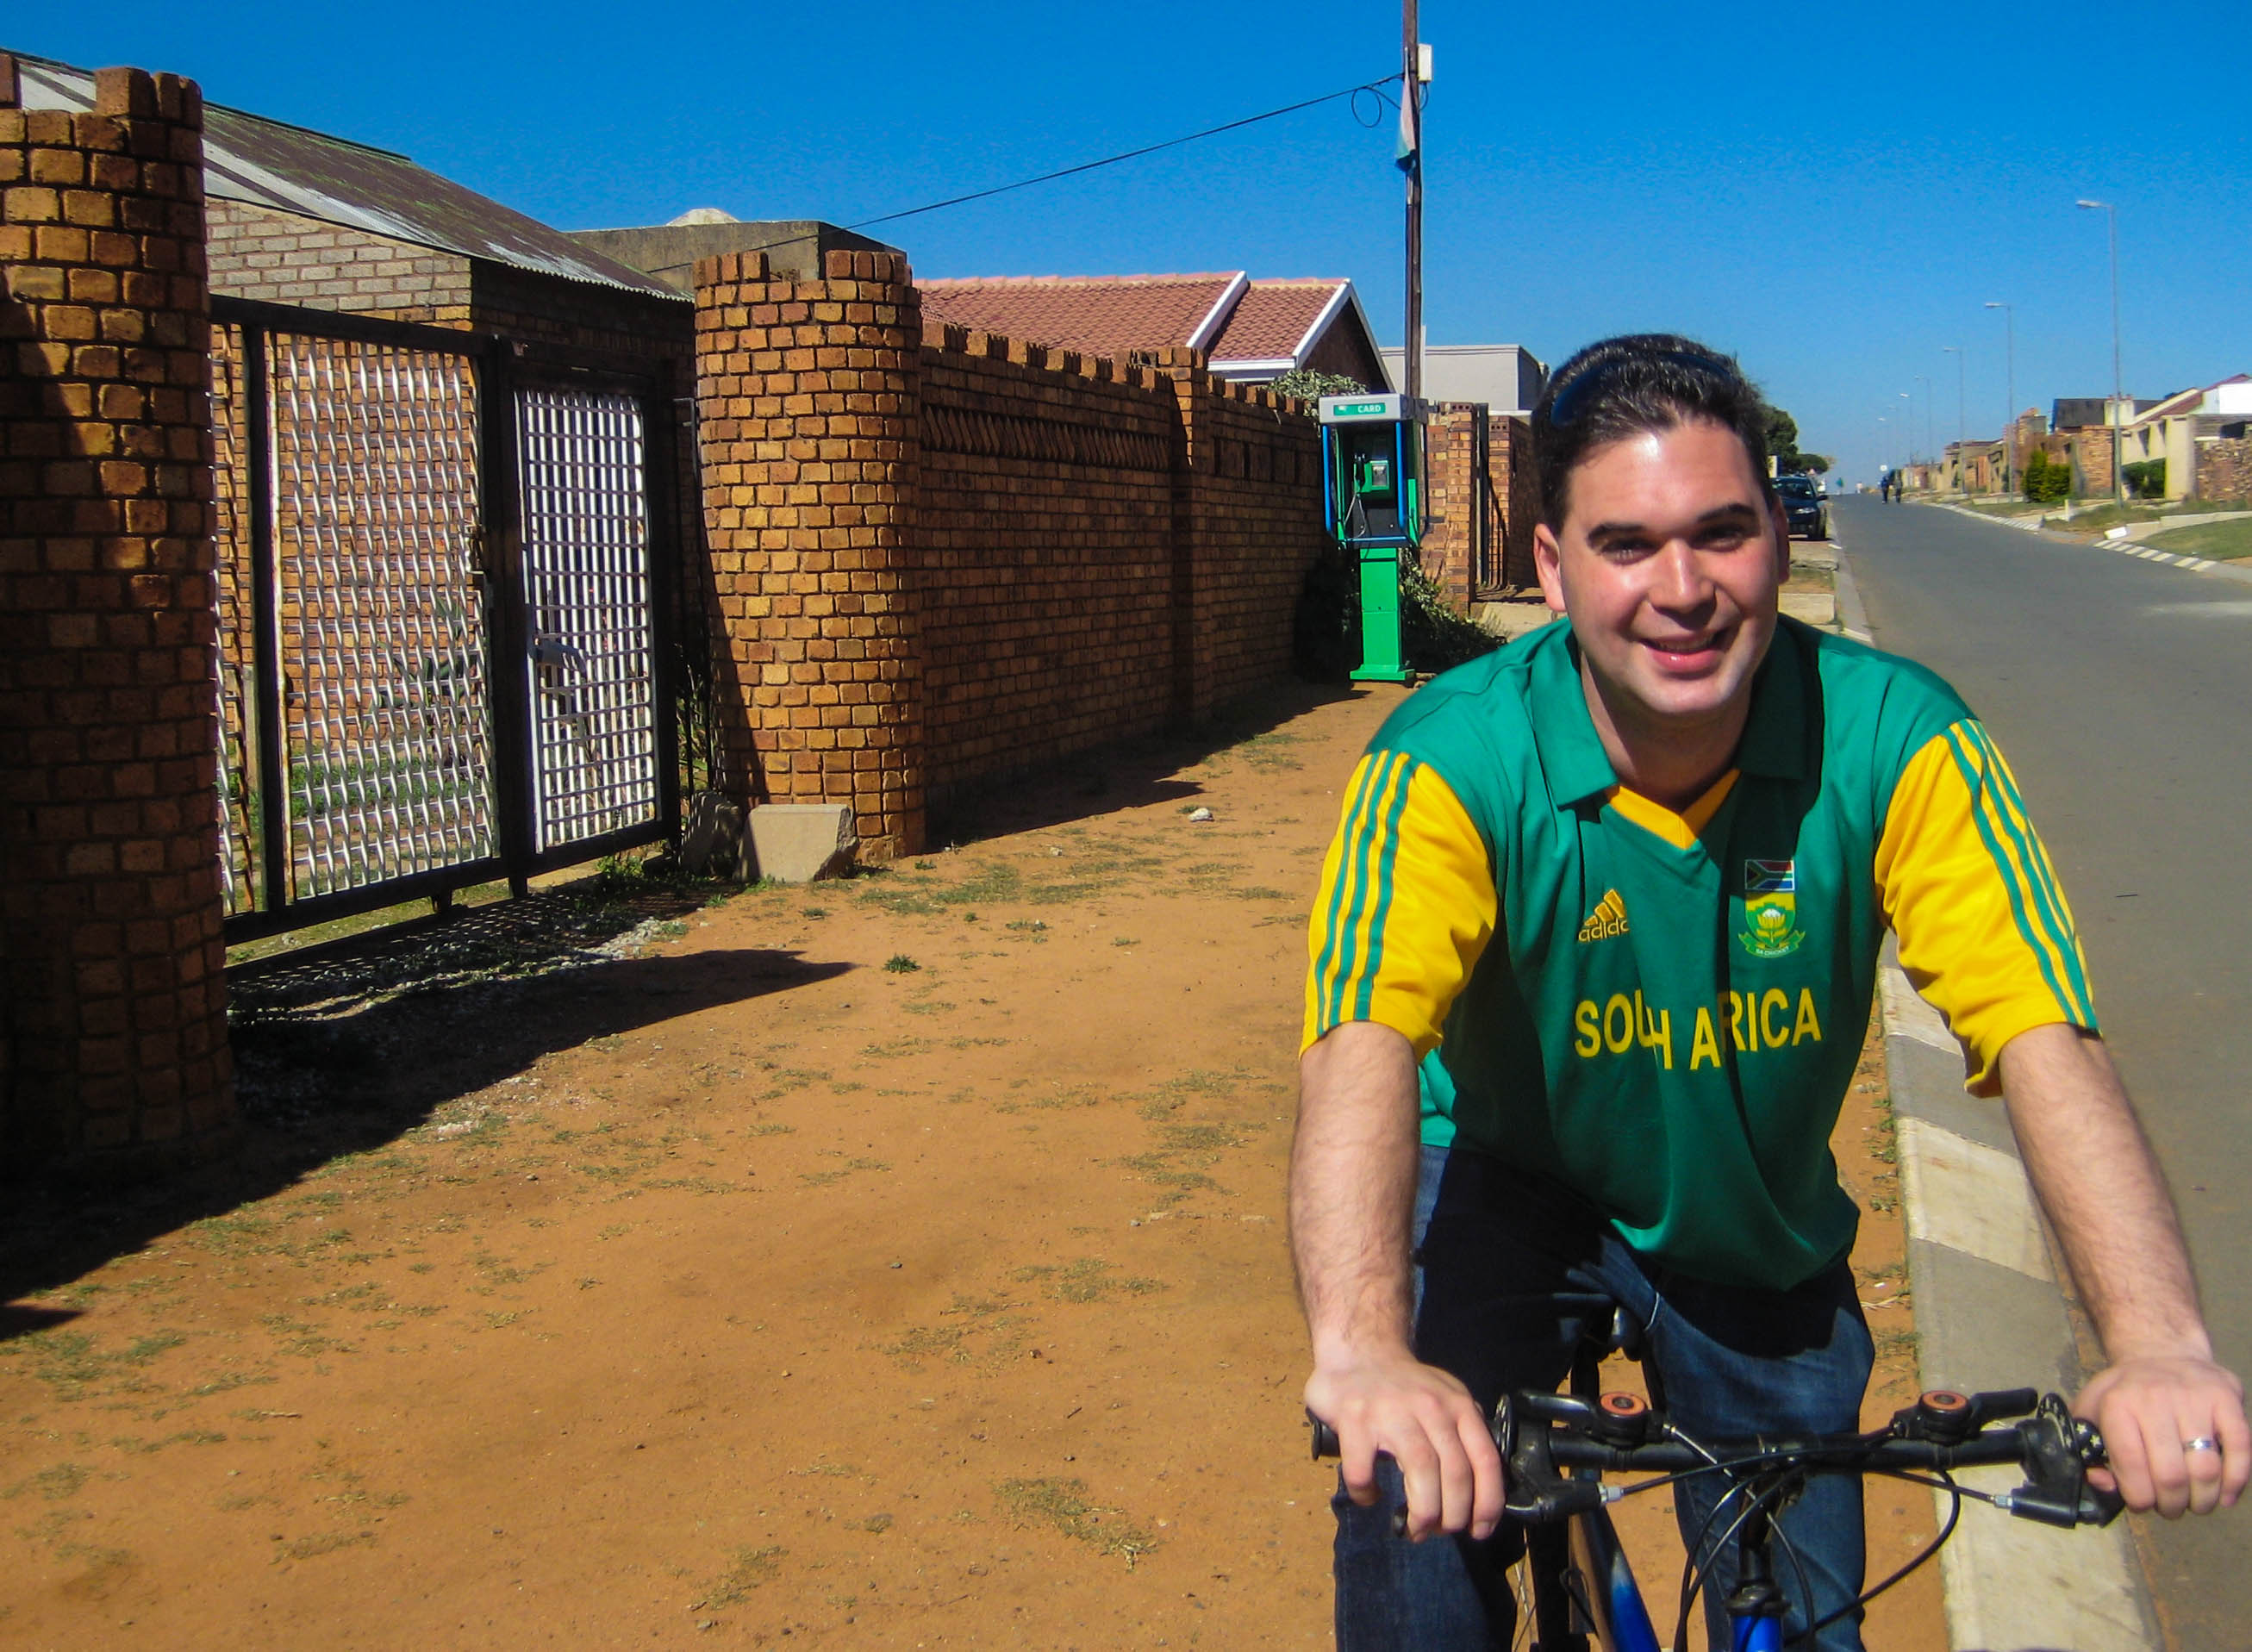 Exploring townships by bike can be an interesting way to cover more ground while still interacting with the locals